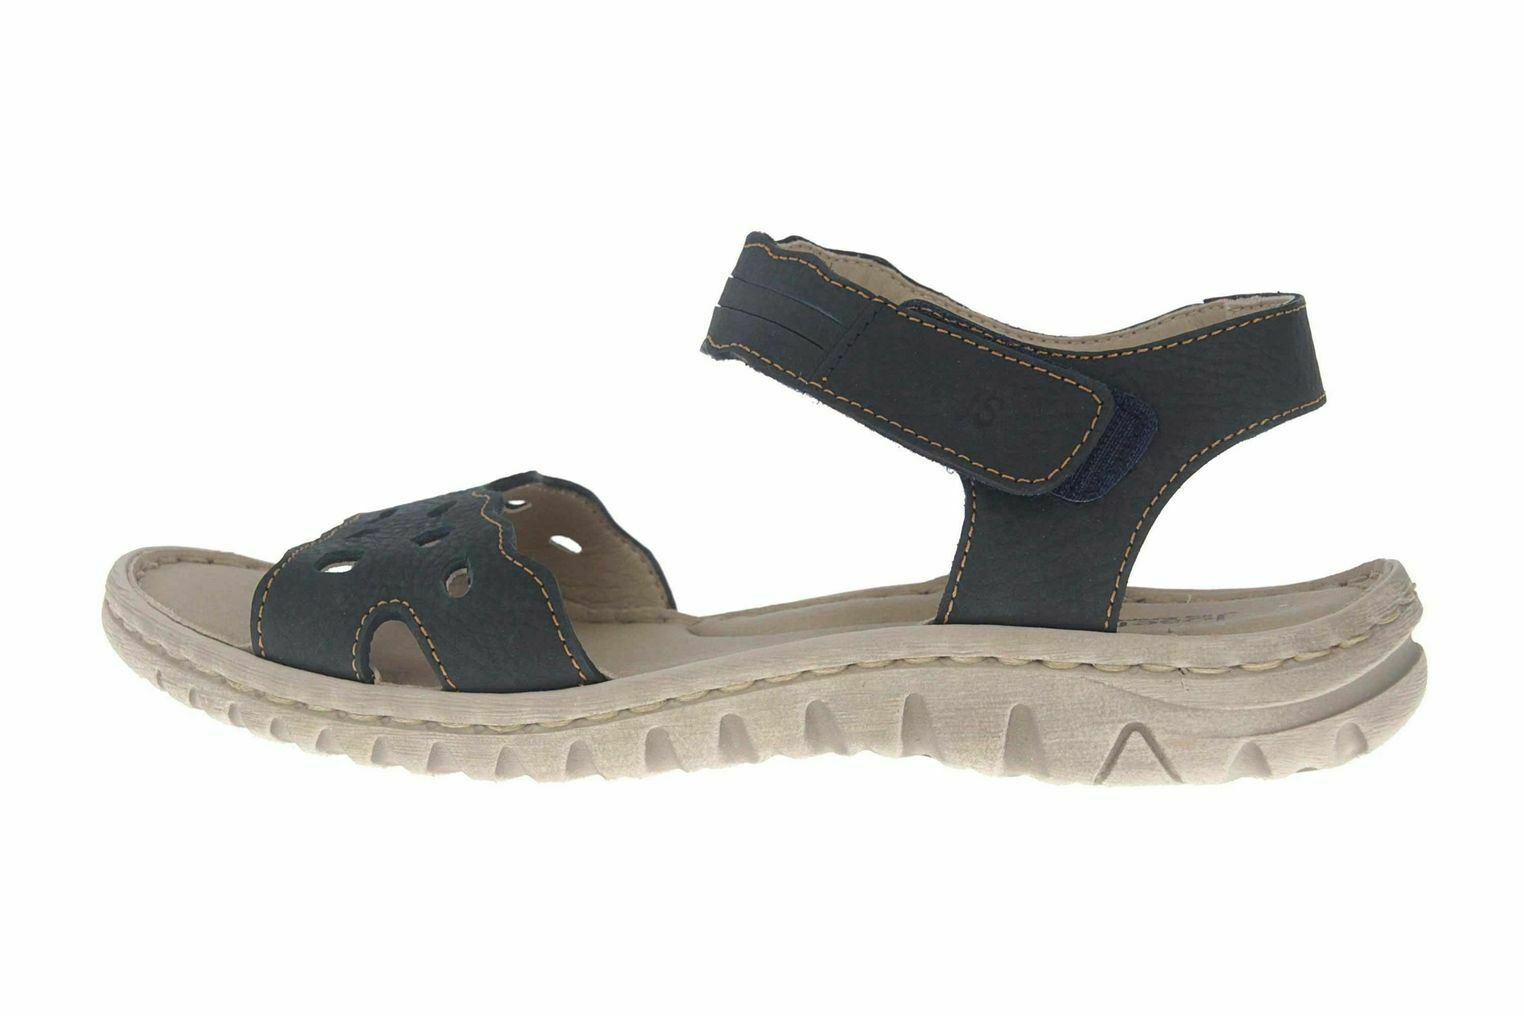 Josef Seibel Lucia 07 Sandals in Plus Sizes bluee 63807 869 500 Large Womens shoes